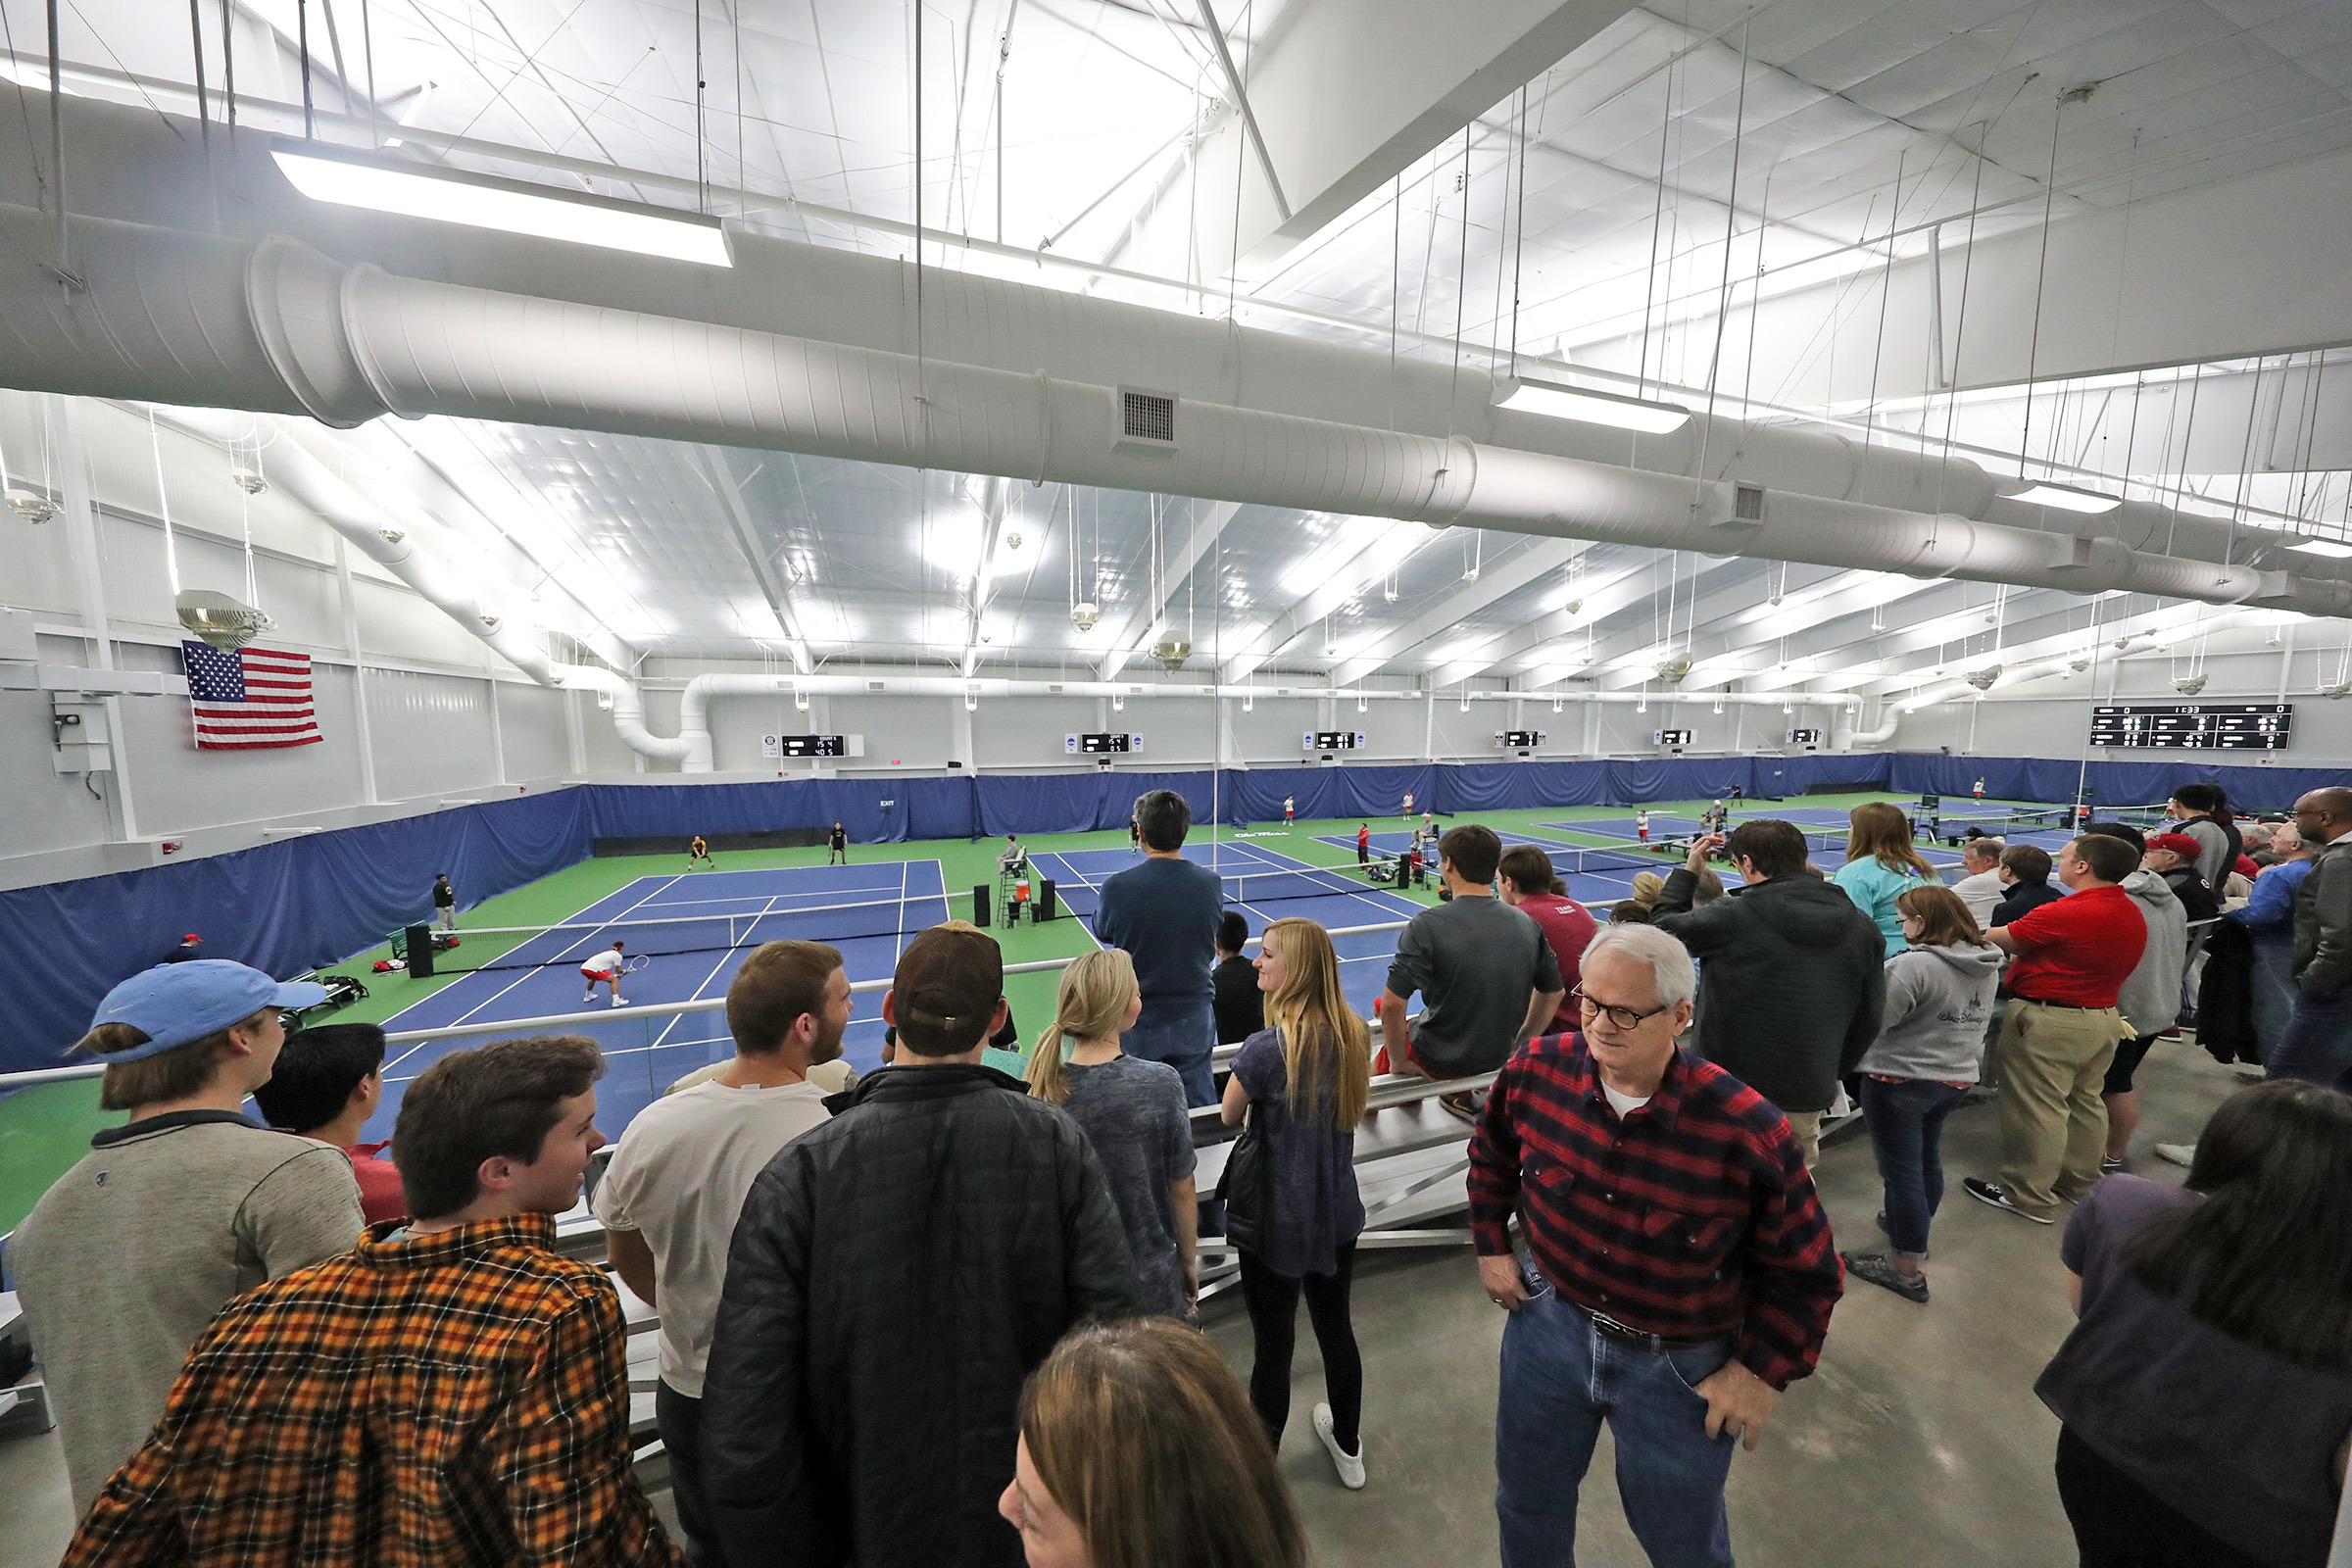 UNIVERSITY OF MS - INDOOR TENNIS